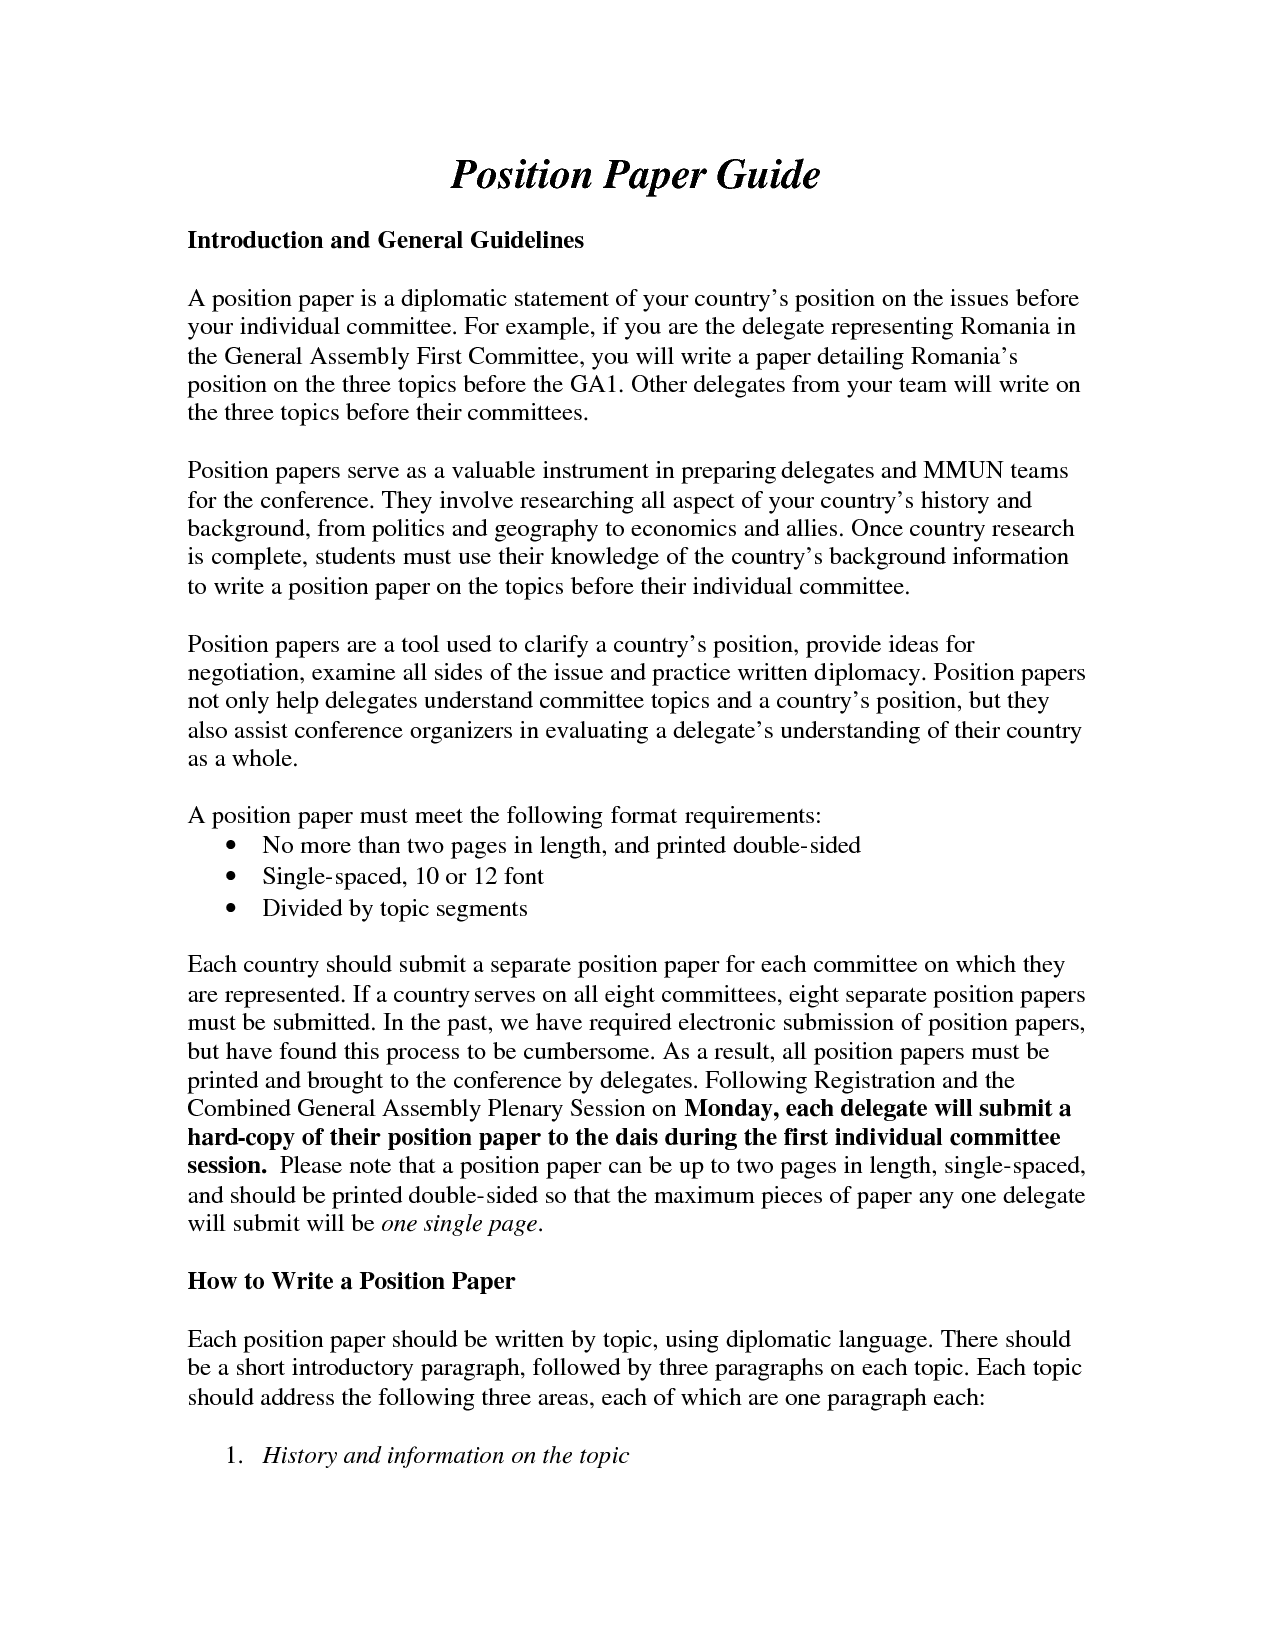 011 Research Papers Topics Paper Proposal Example 343593 Phenomenal For High School Students About Elementary Education Hot In Computer Science Full